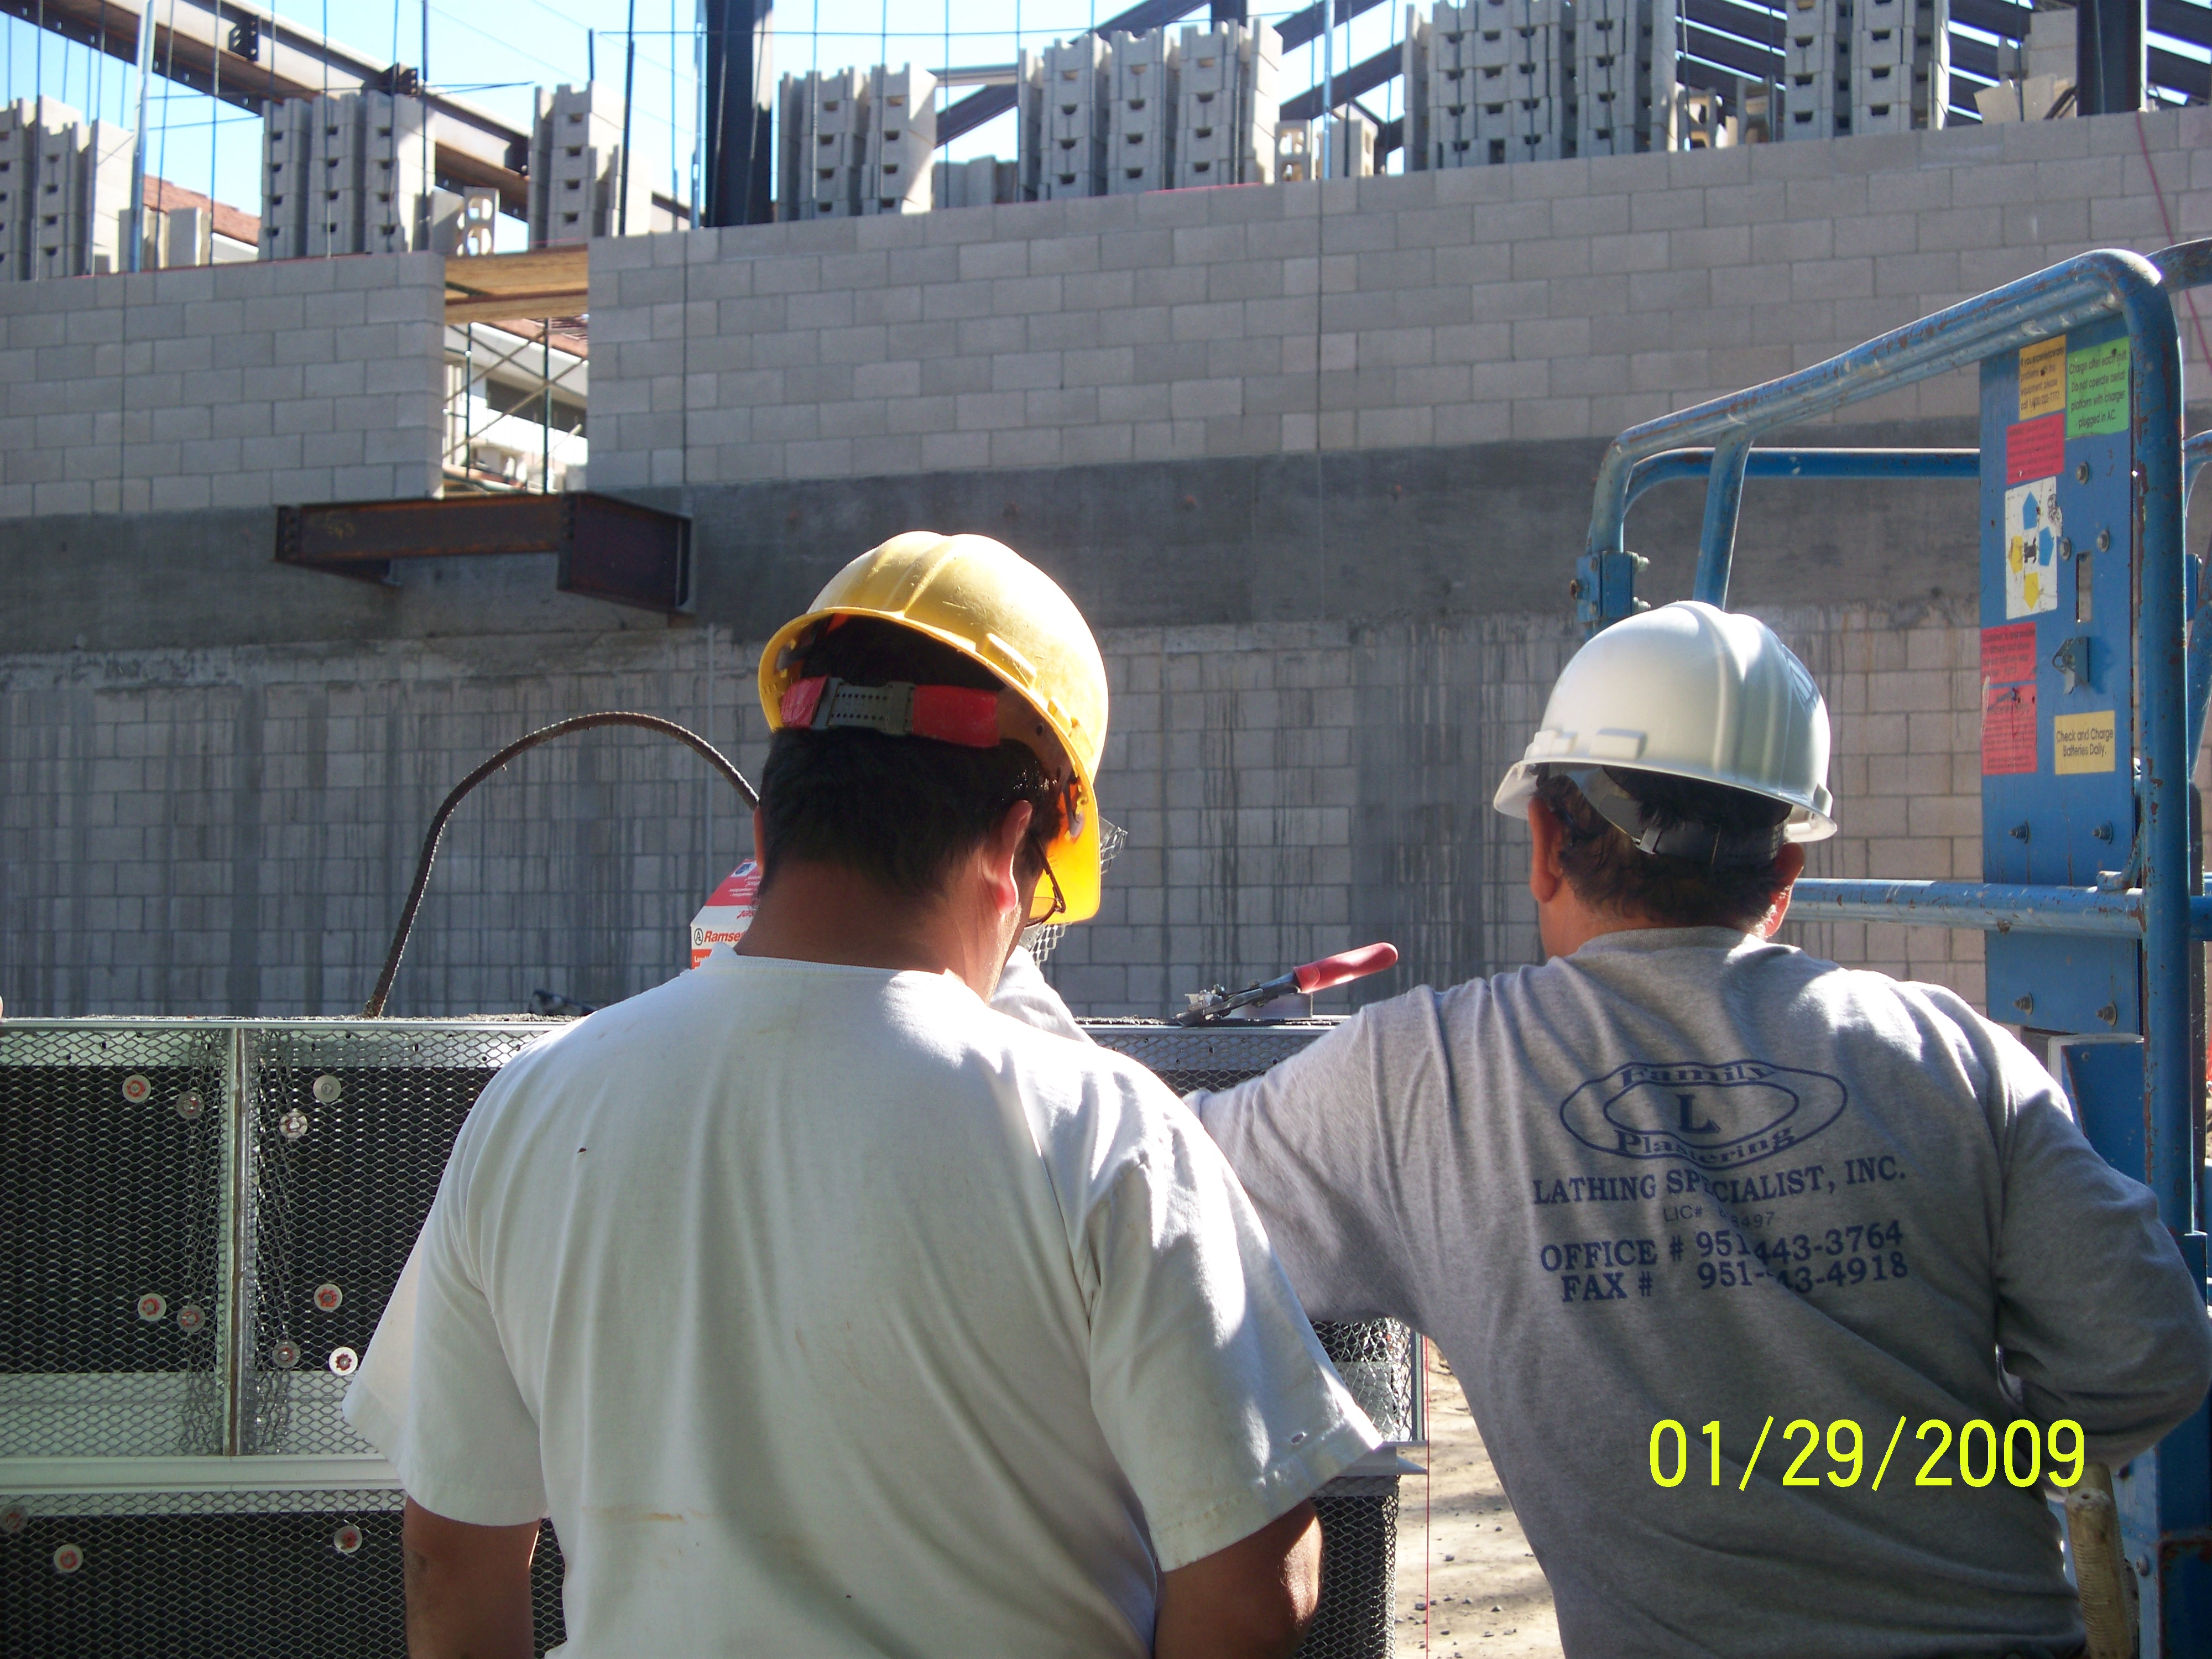 Construction of an addition to Richard Nixon Library in Yorba Linda, CA